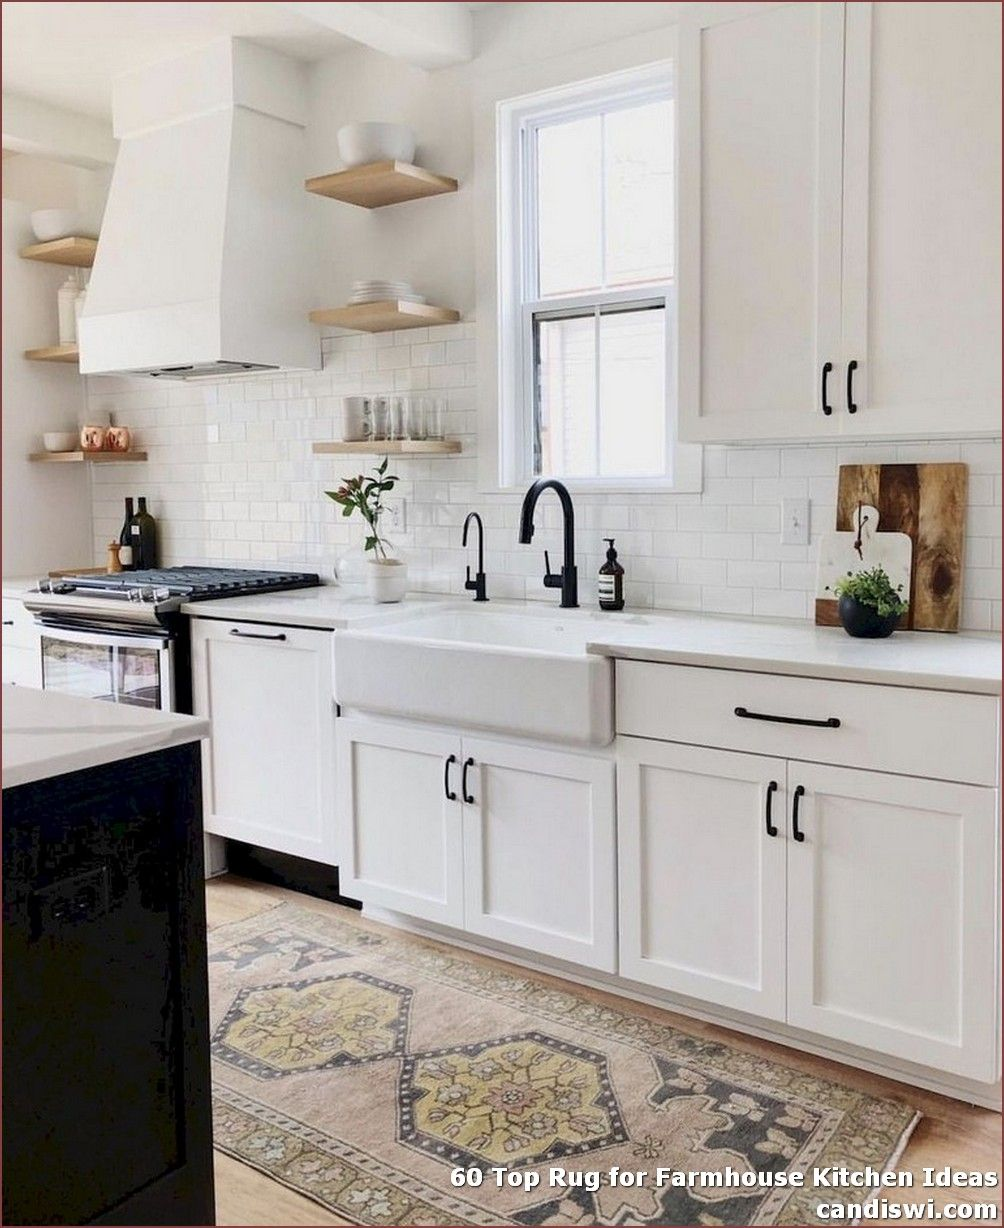 60 Top Rug For Farmhouse Kitchen Ideas 3 In 2020 White Kitchen Design Farmhouse Sink White Kitchen Decor